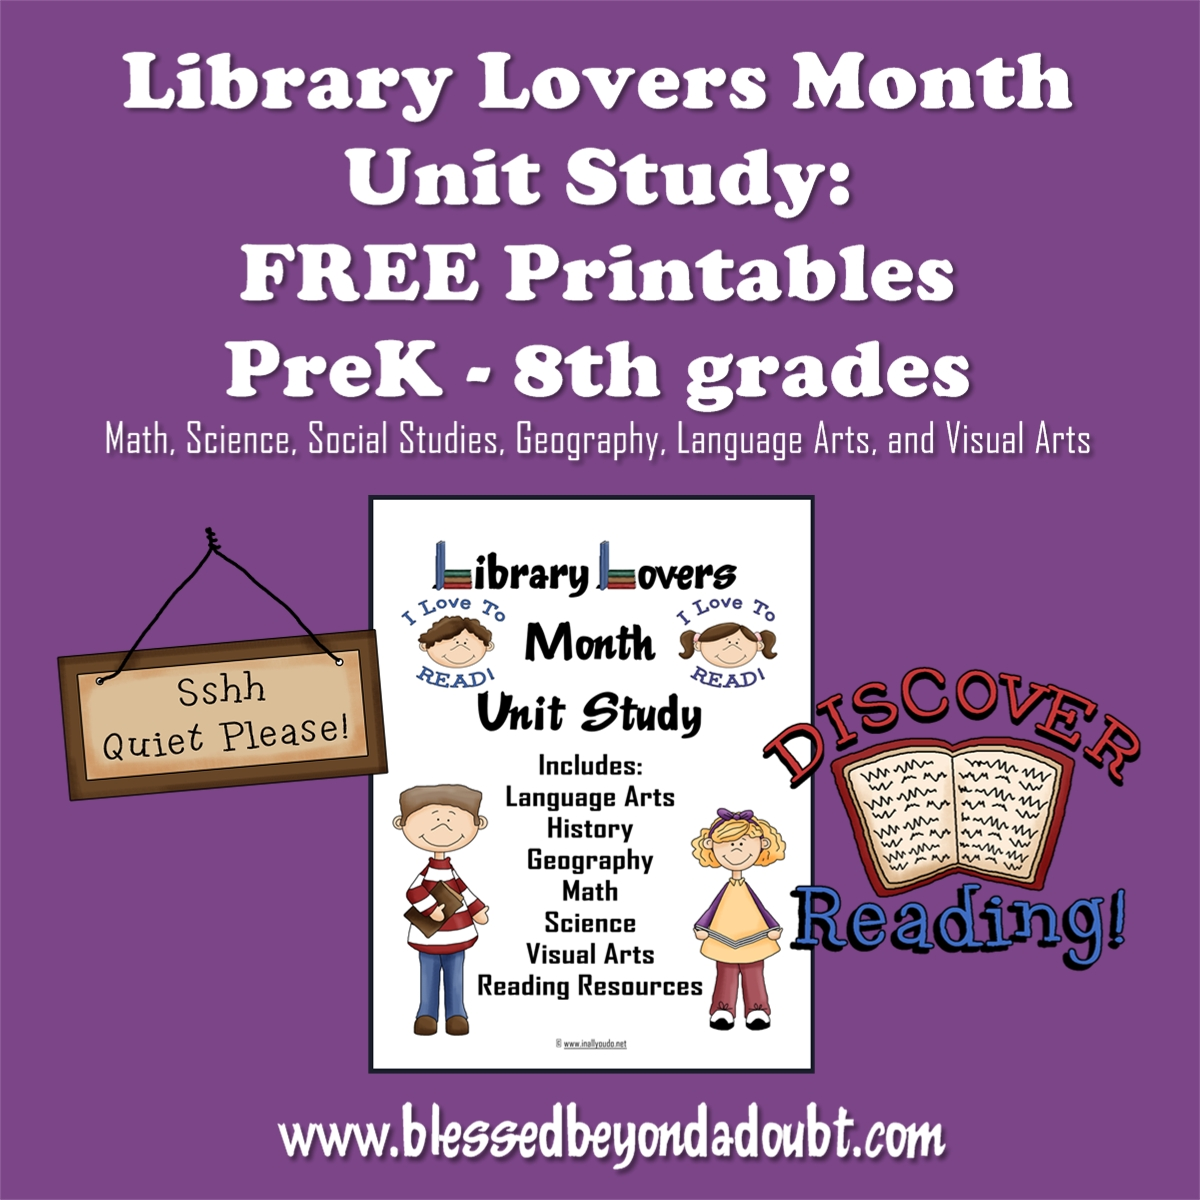 Library Lovers Month Unit Study